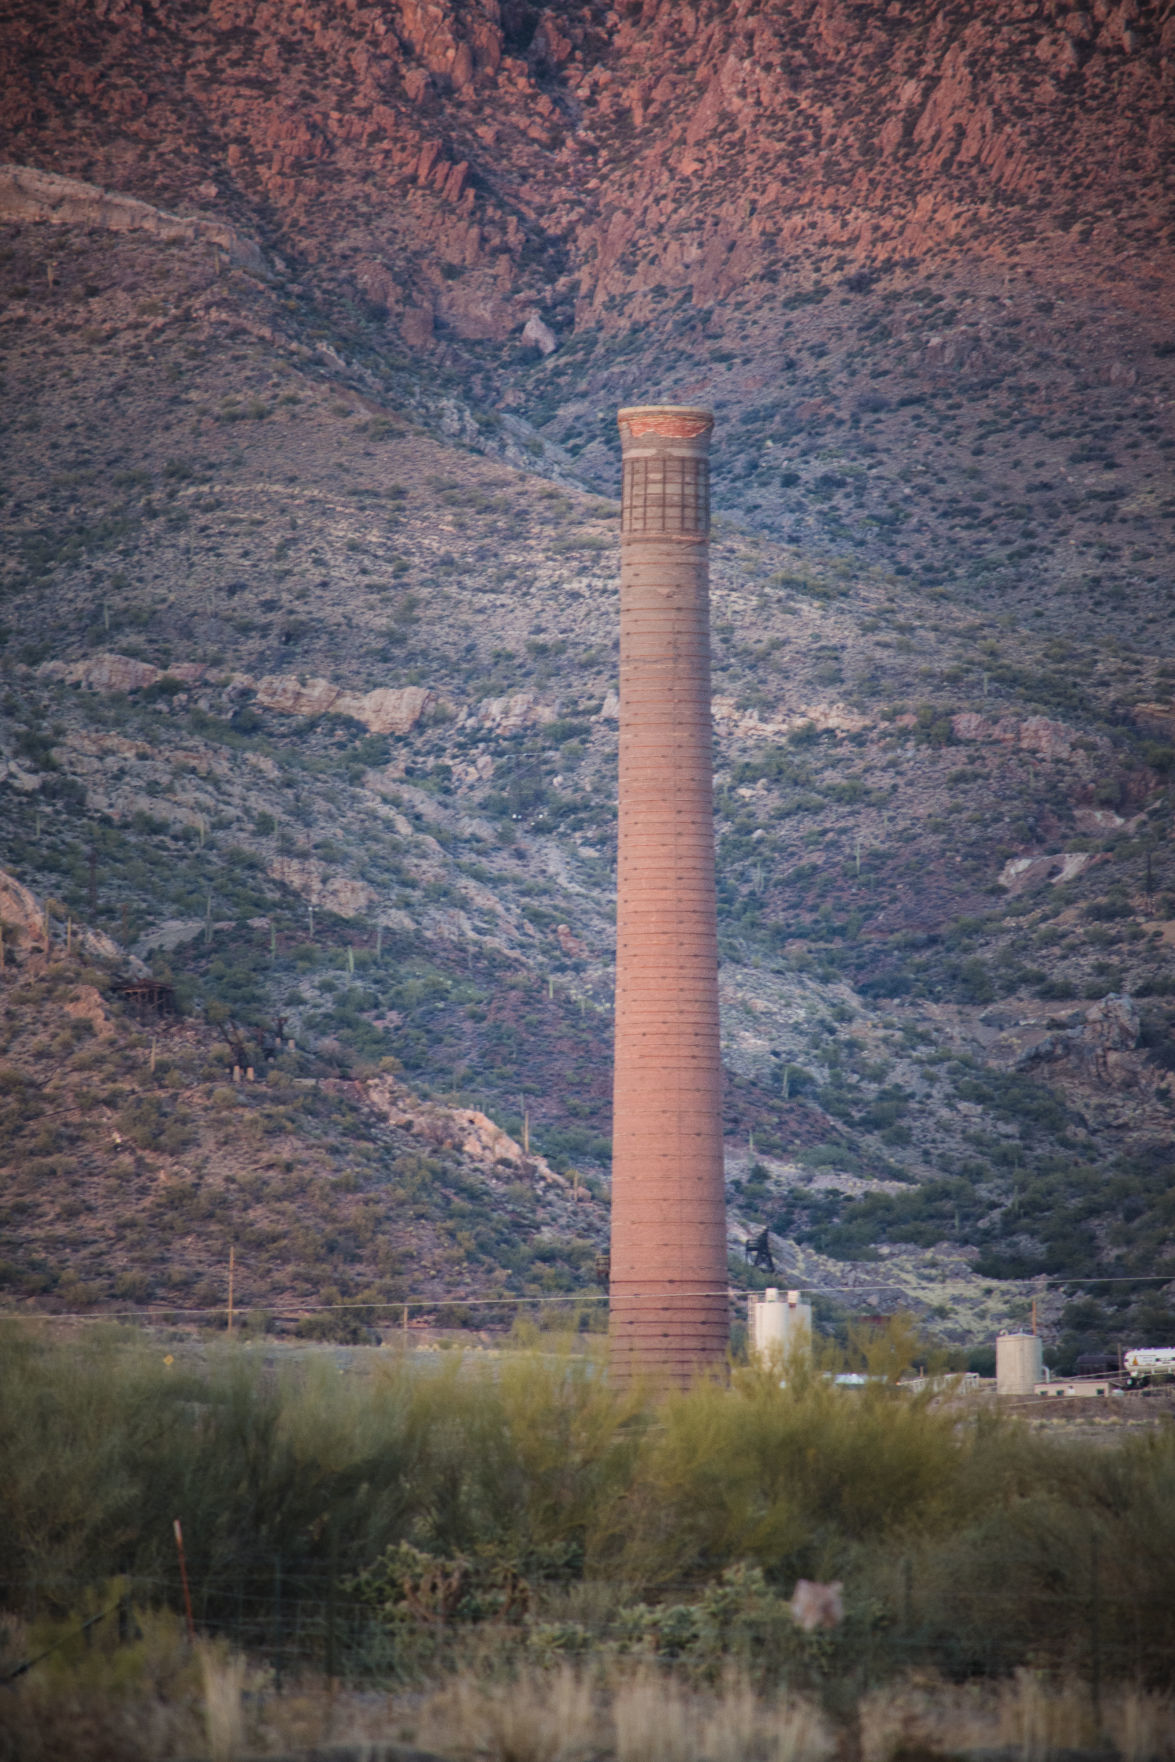 The Smelter Stack